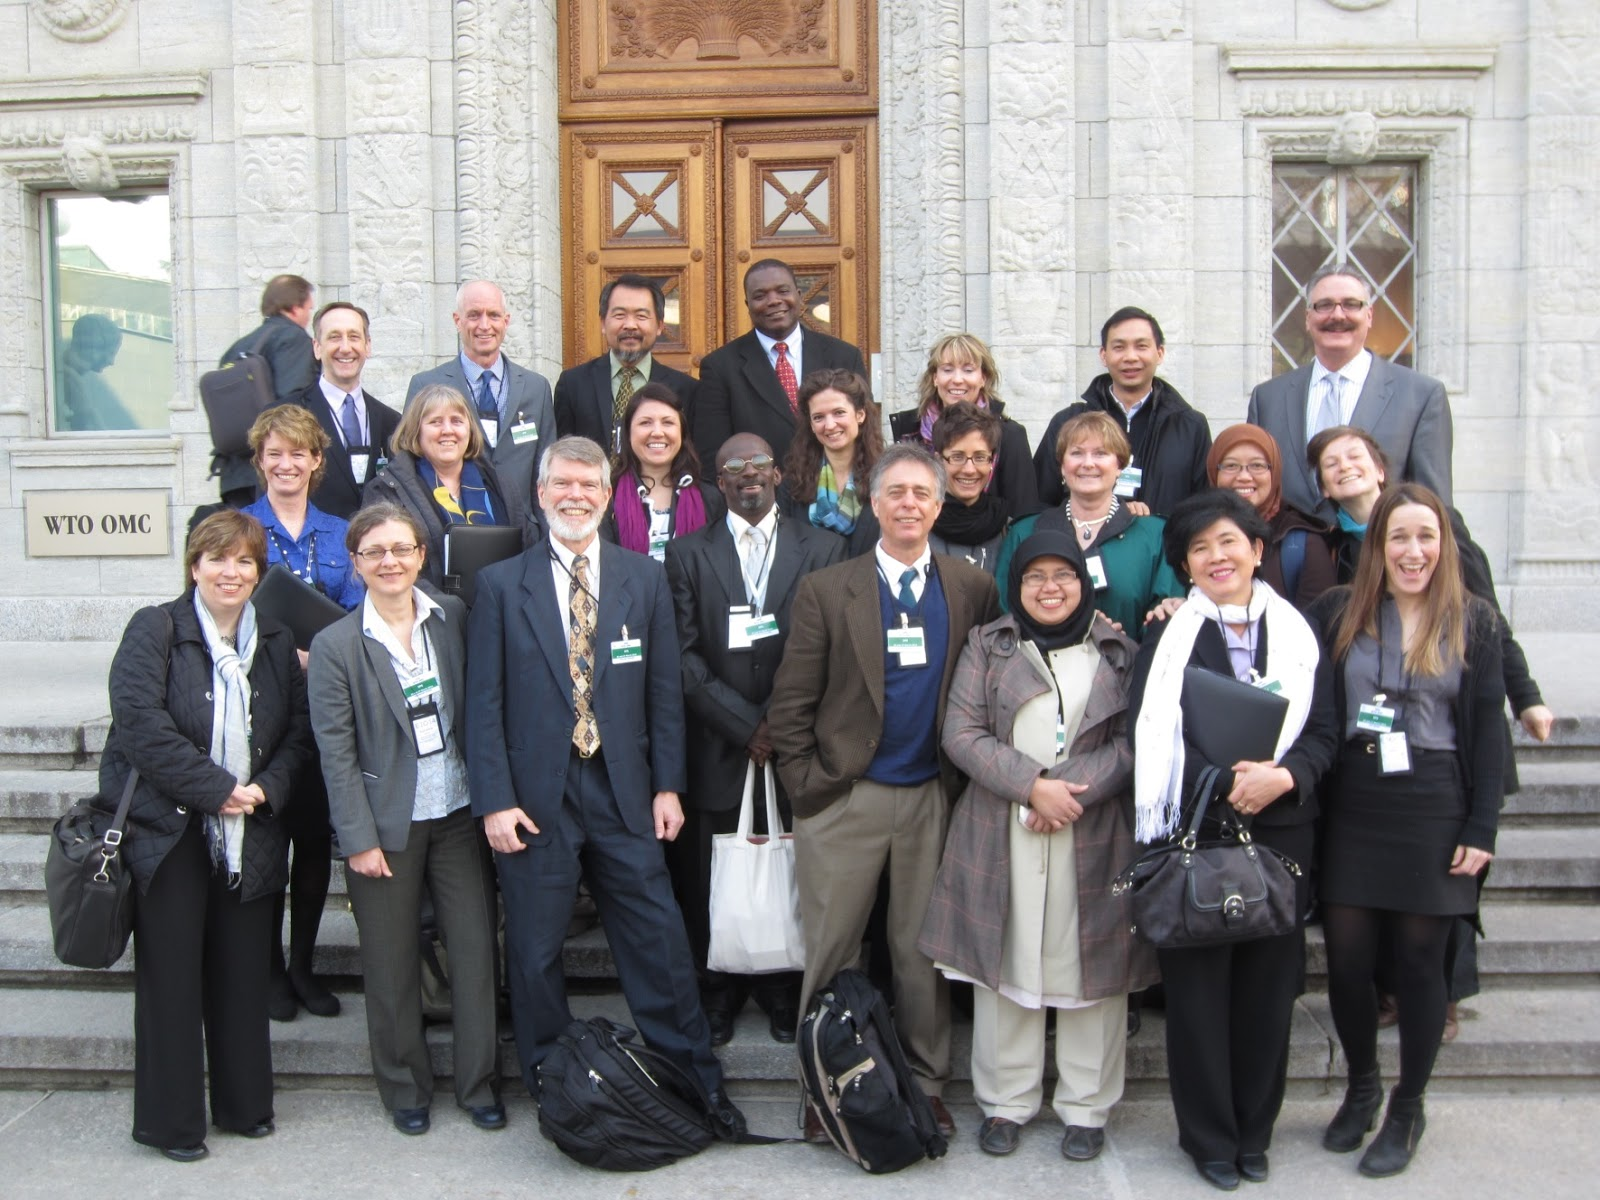 Full group of 2014 EIO participants standing on the steps of the WTO building